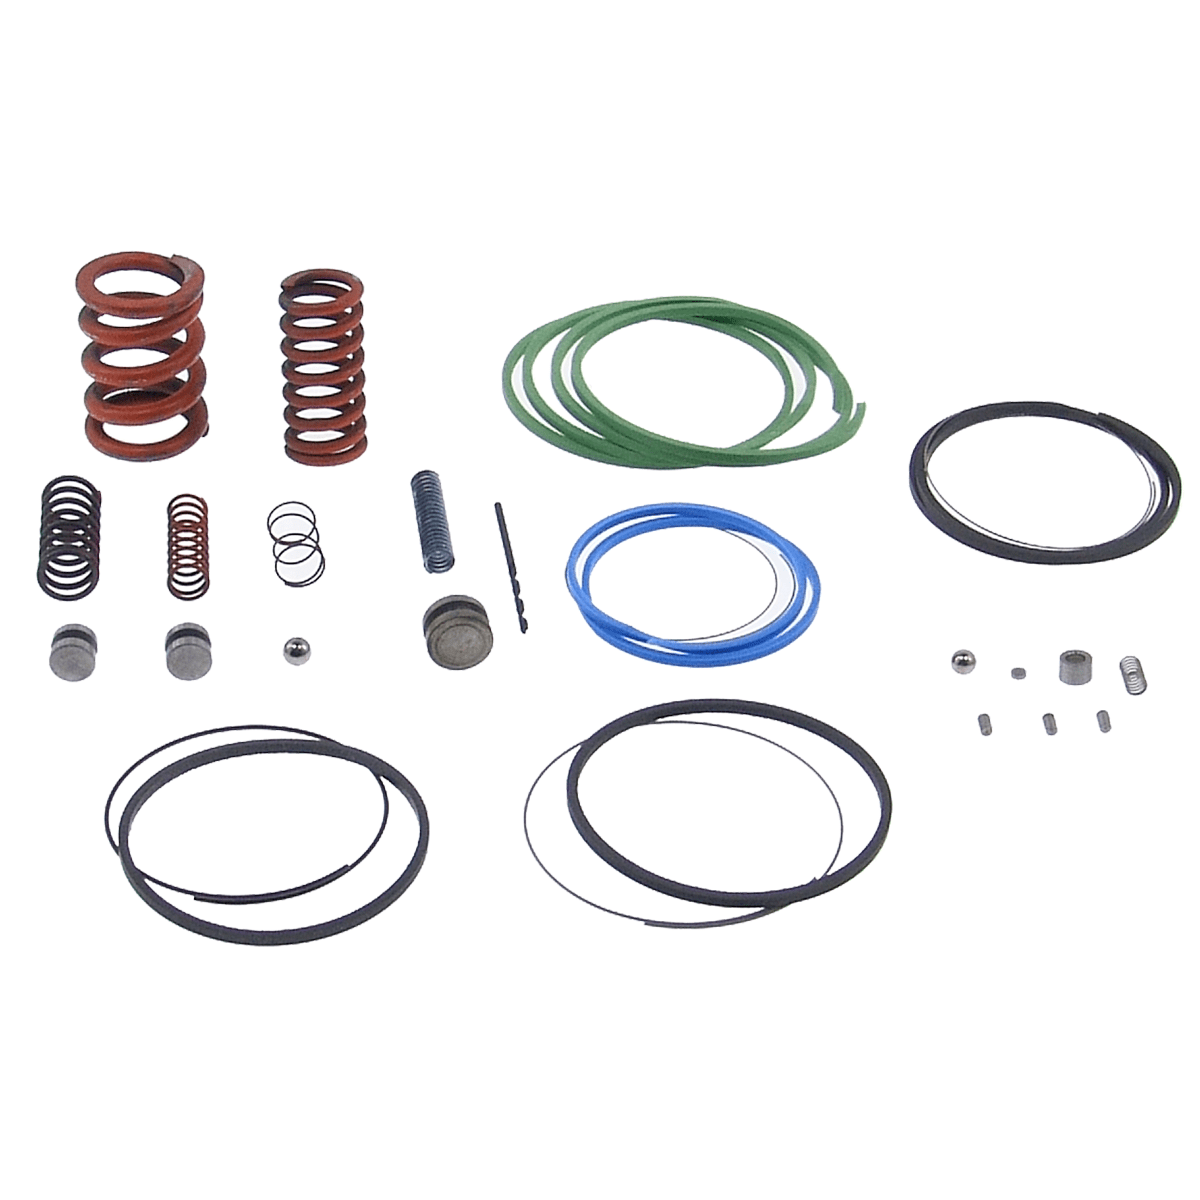 Mazda, Nissan, Subaru SHIFT KIT® Valve Body Repair Kit